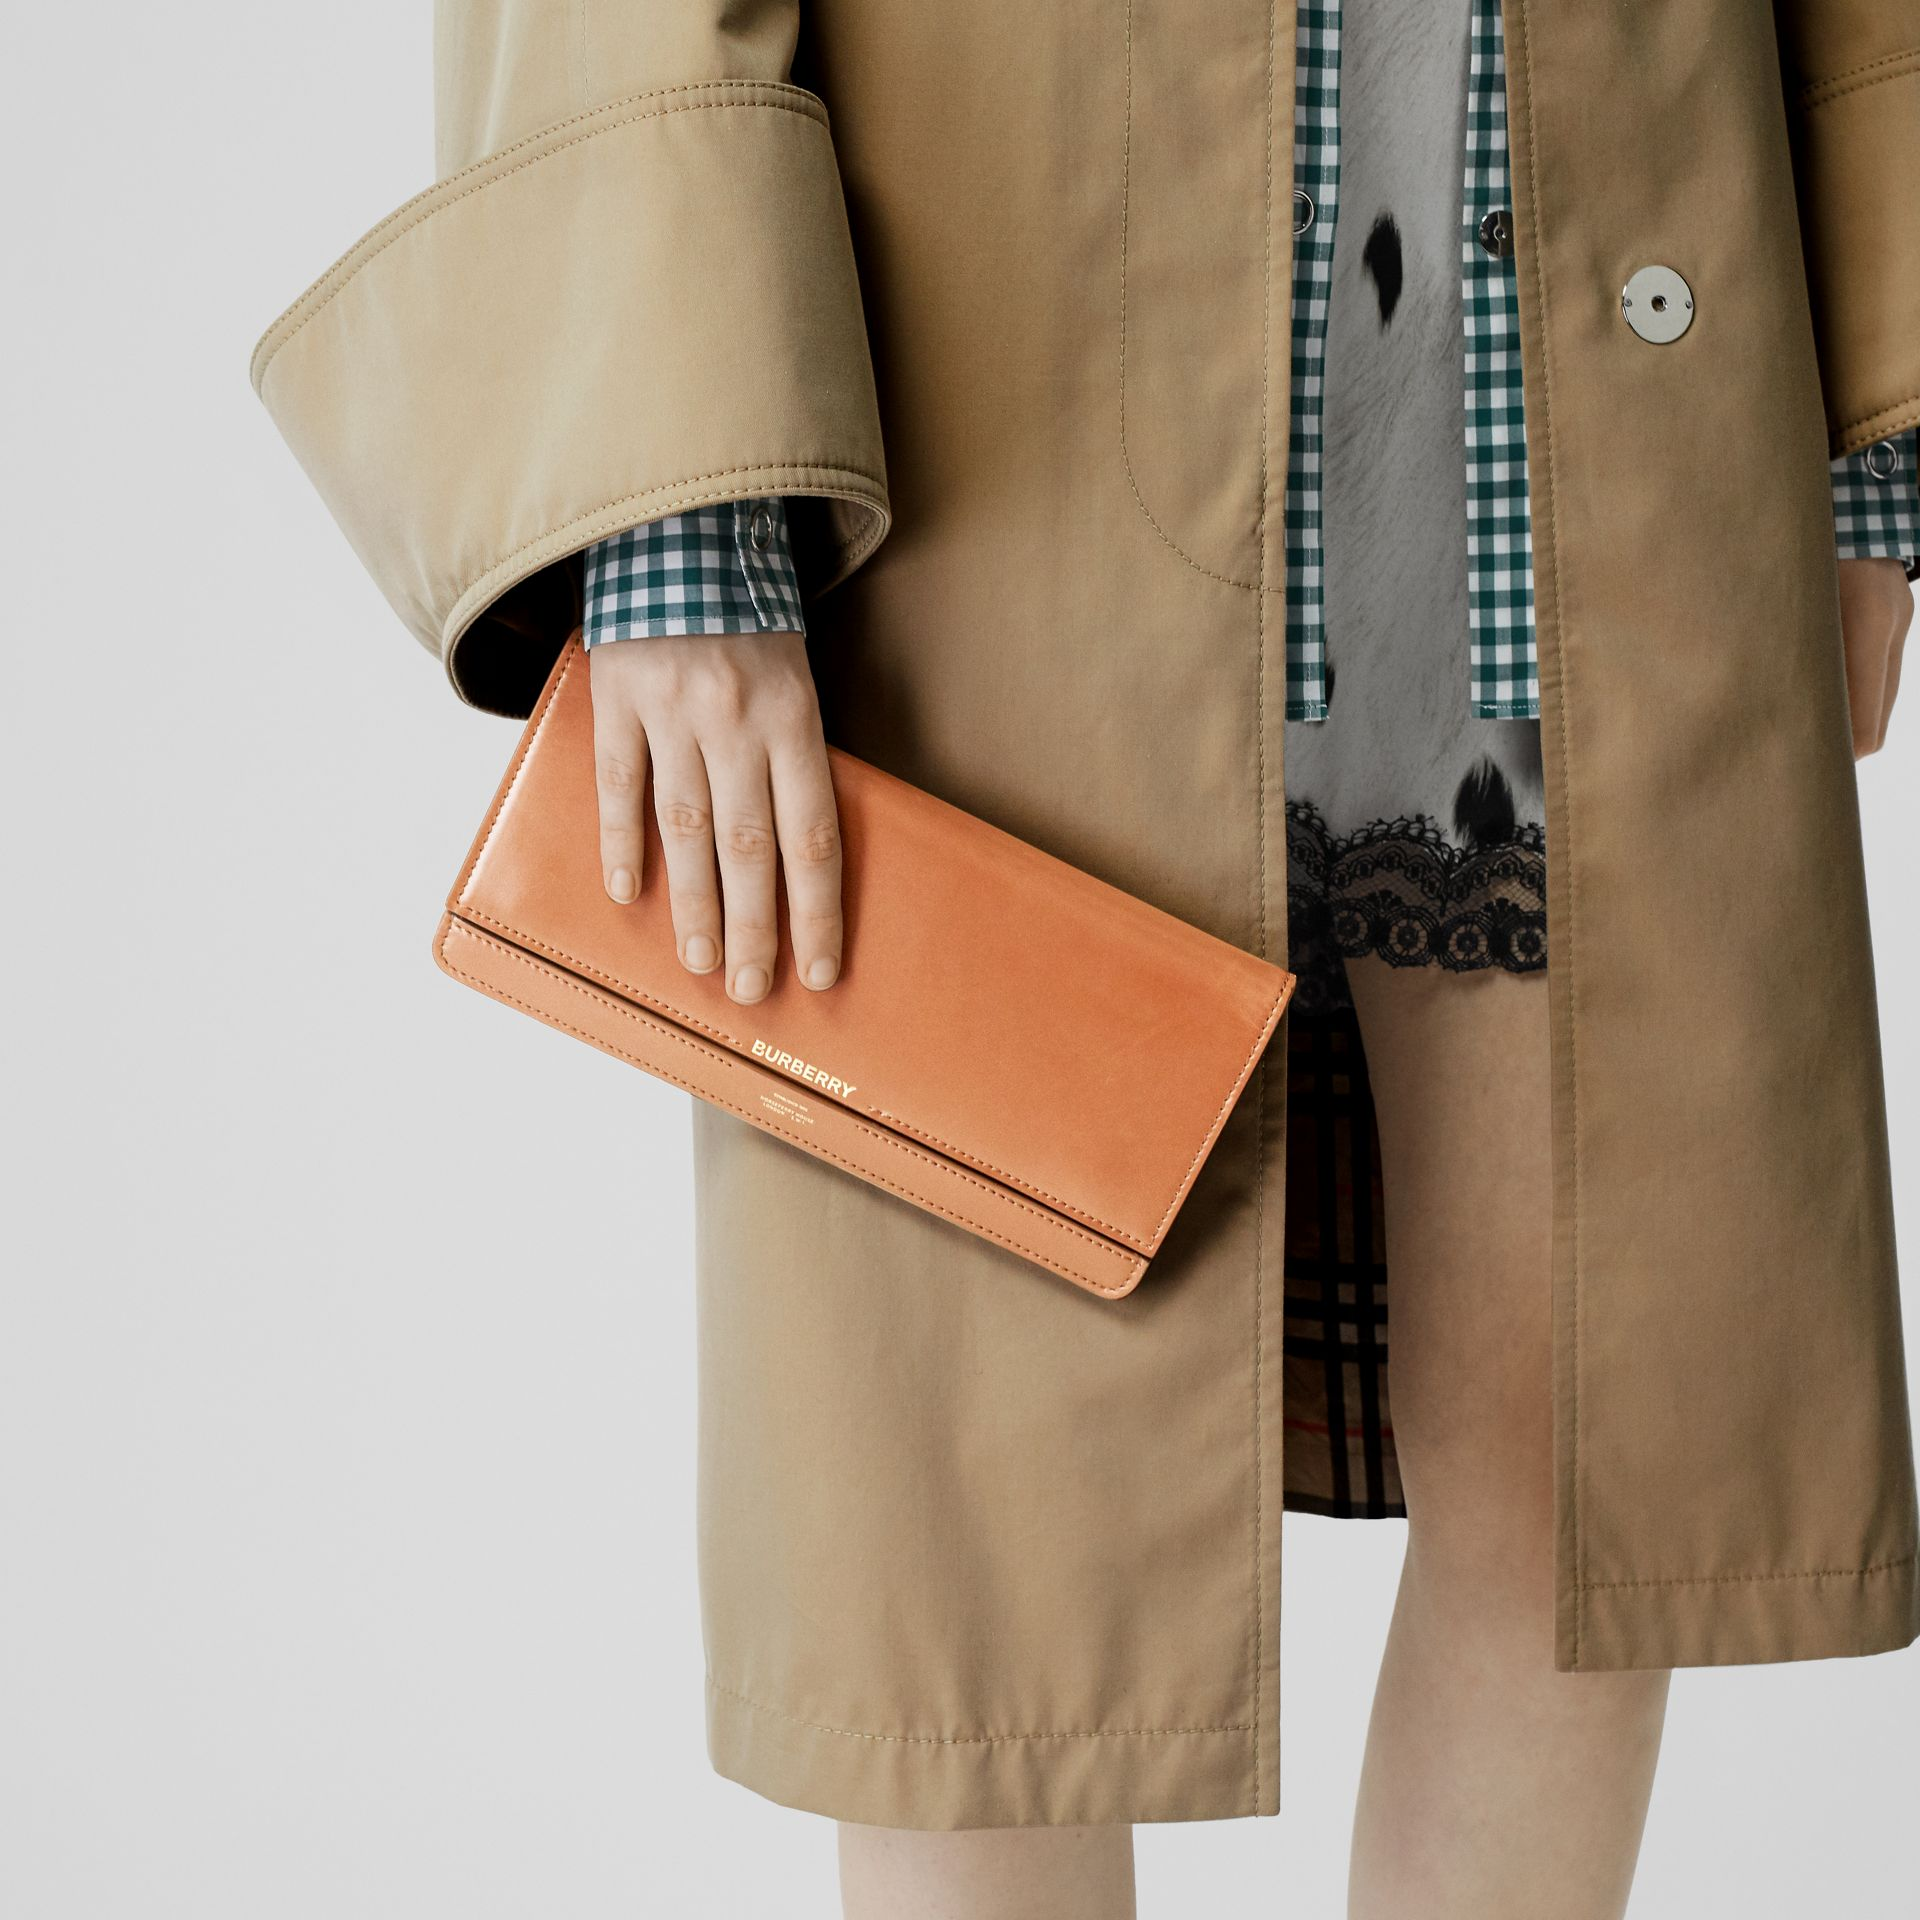 Horseferry Print Leather Bag with Detachable Strap in Nutmeg - Women | Burberry Hong Kong - gallery image 2